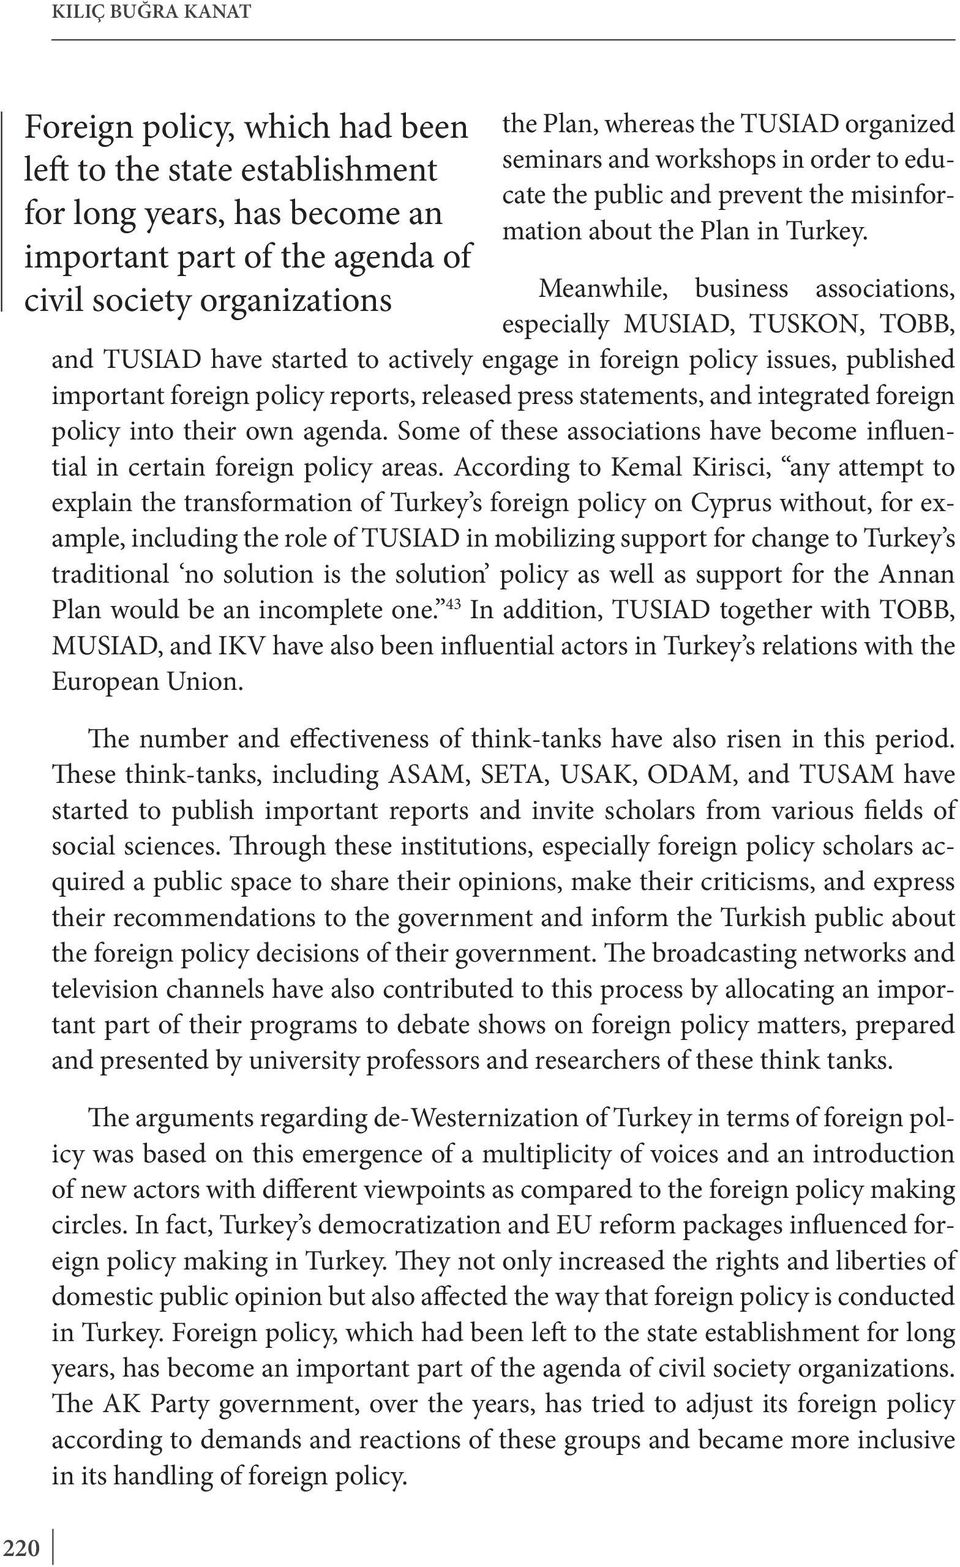 Meanwhile, business associations, especially MUSIAD, TUSKON, TOBB, and TUSIAD have started to actively engage in foreign policy issues, published important foreign policy reports, released press